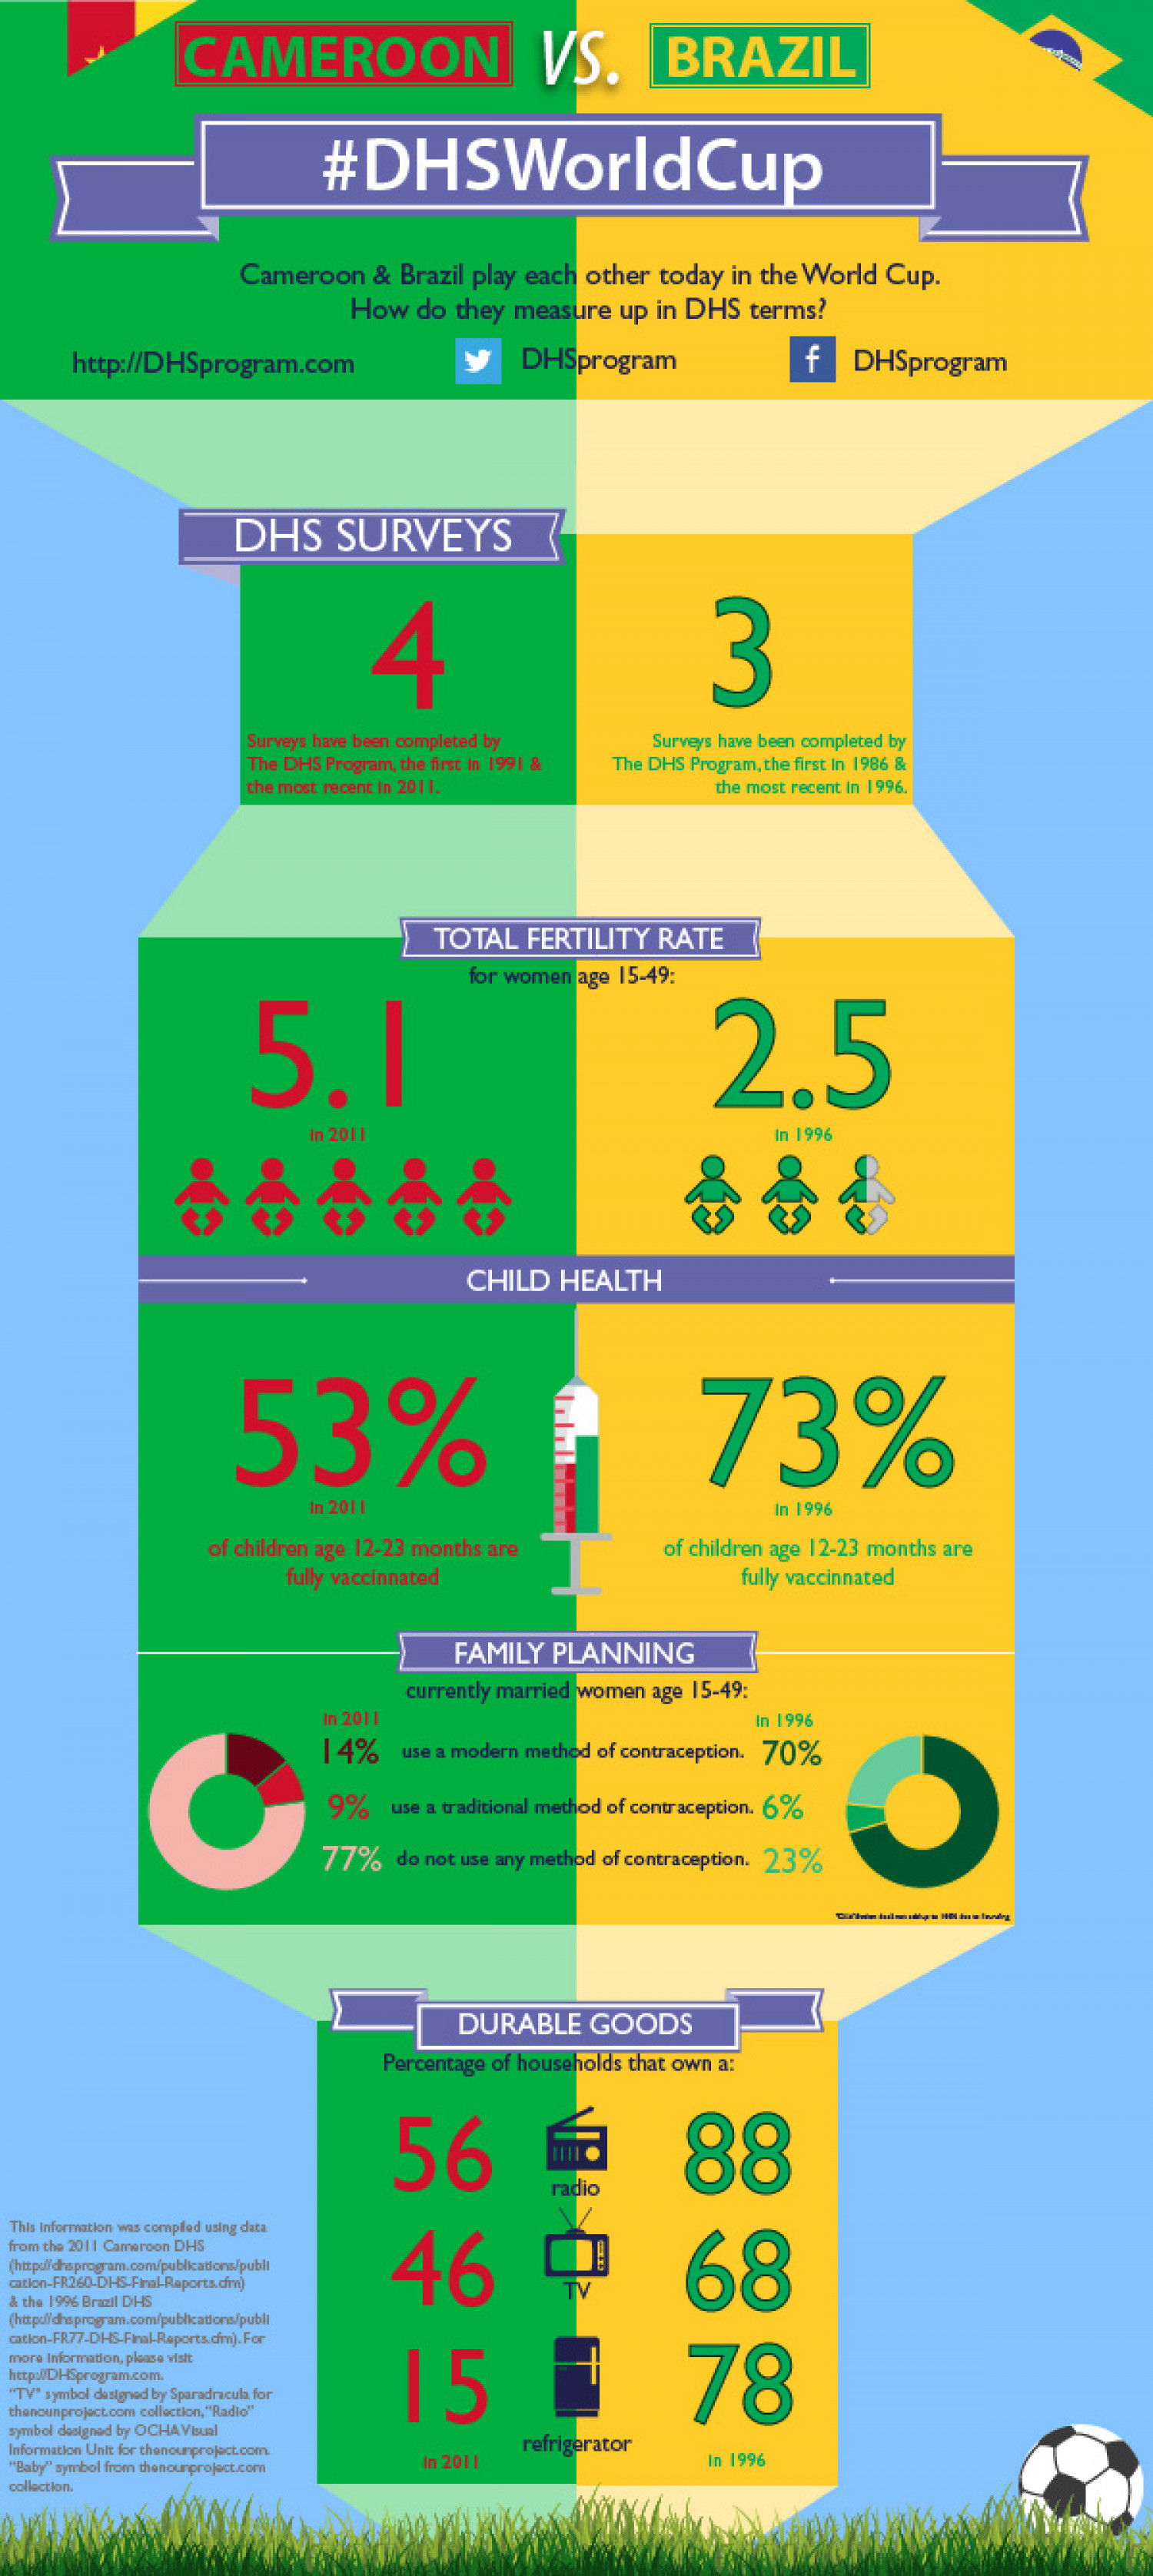 #DHSWorldCup - Cameroon vs. Brazil Infographic